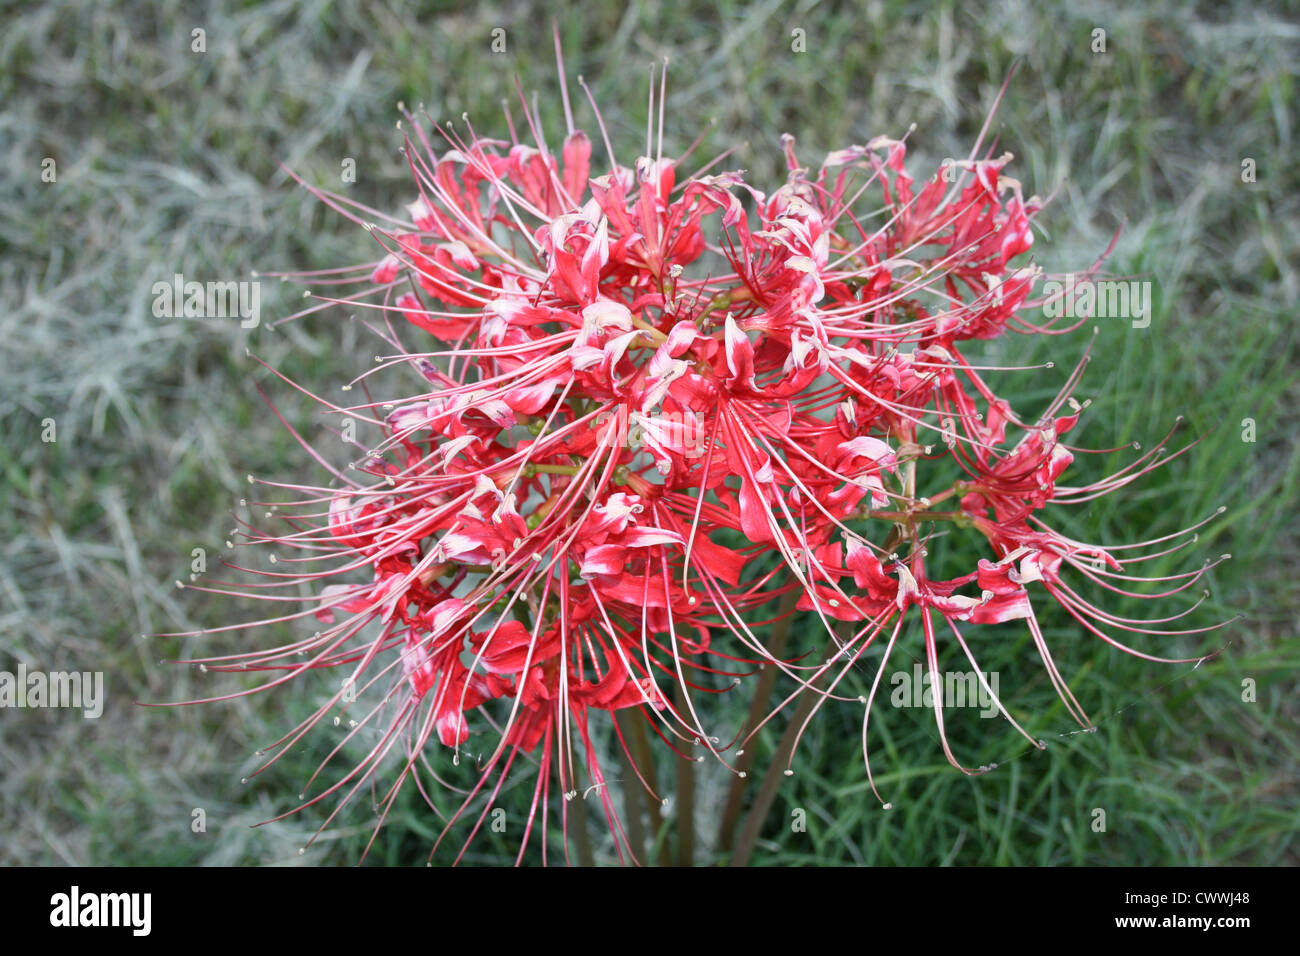 Red spider lily flower art photograph floral botanical flowers stock red spider lily flower art photograph floral botanical flowers photography izmirmasajfo